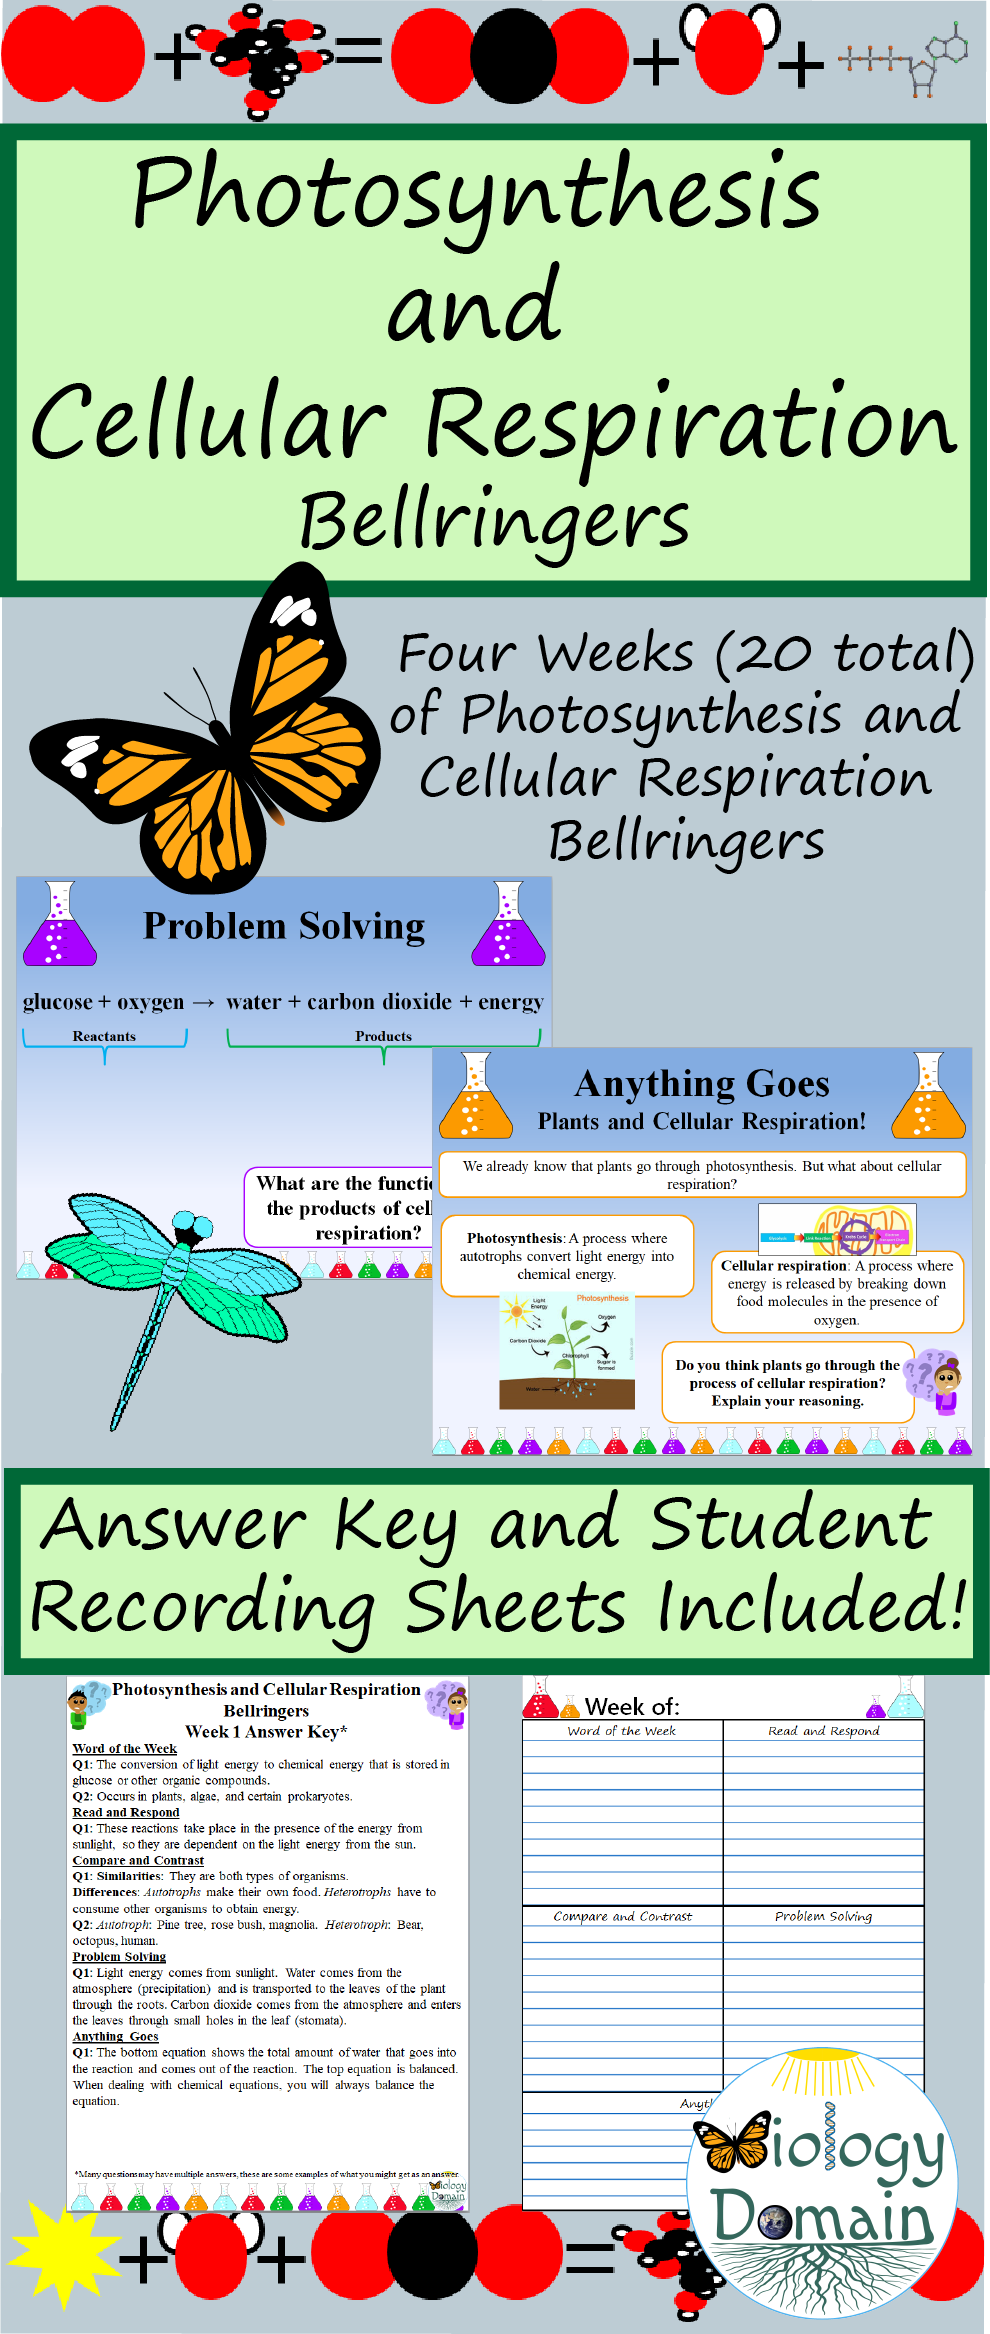 Pin By Jennifer Stevens On 6th Grade Photosynthesis And Cellular Respiration Bellringers Photosynthesis [ 2334 x 990 Pixel ]